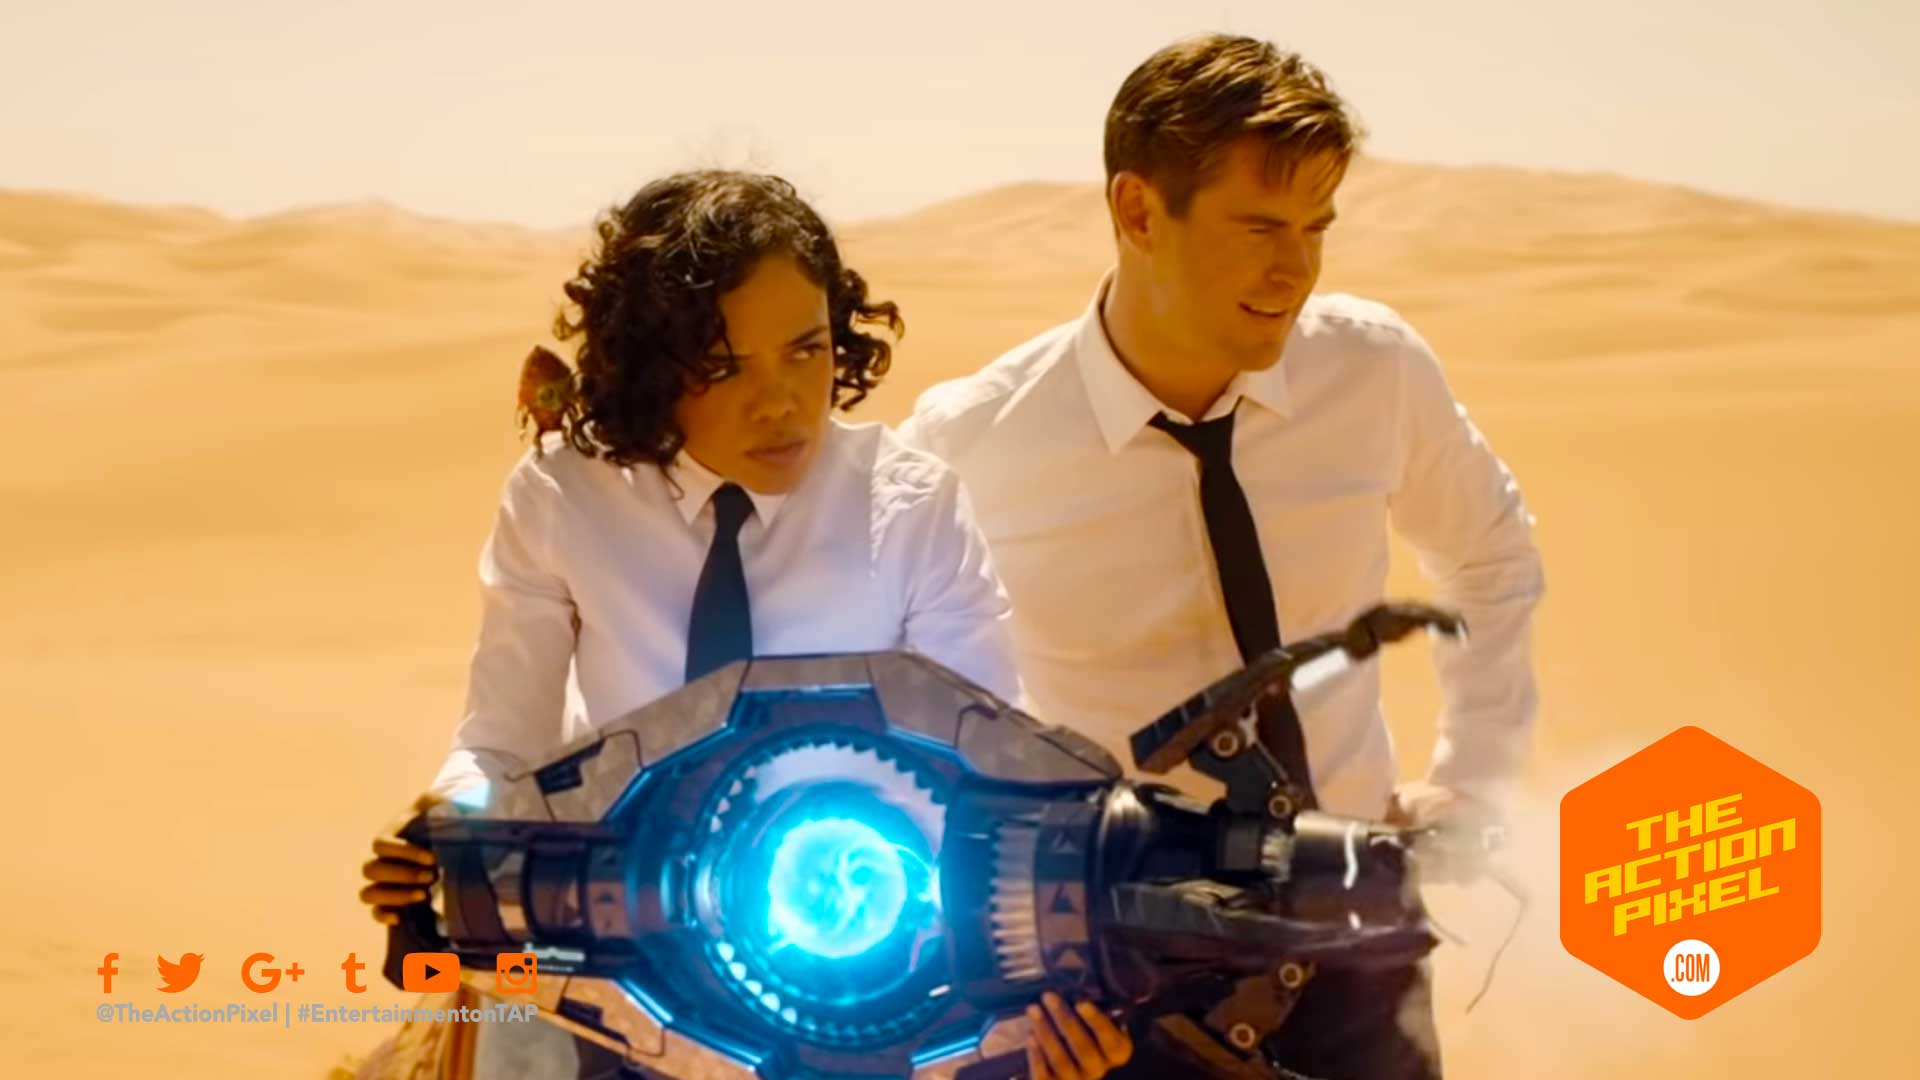 TESSA THOMSPSON, MEN IN BLACK ROACH GUY, MIB, MEN IN BLACK, MEN IN BLACK INTERNATIONAL, MEN IN BLACK: INTERNATIONAL, MIB INTERNATIONAL, CHRIS HEMSWORTH, THE ACTION PIXEL, ENTERTAINMENT ON TAP, TRAILER, SONY PICTURES ENTERTAINMENT ,